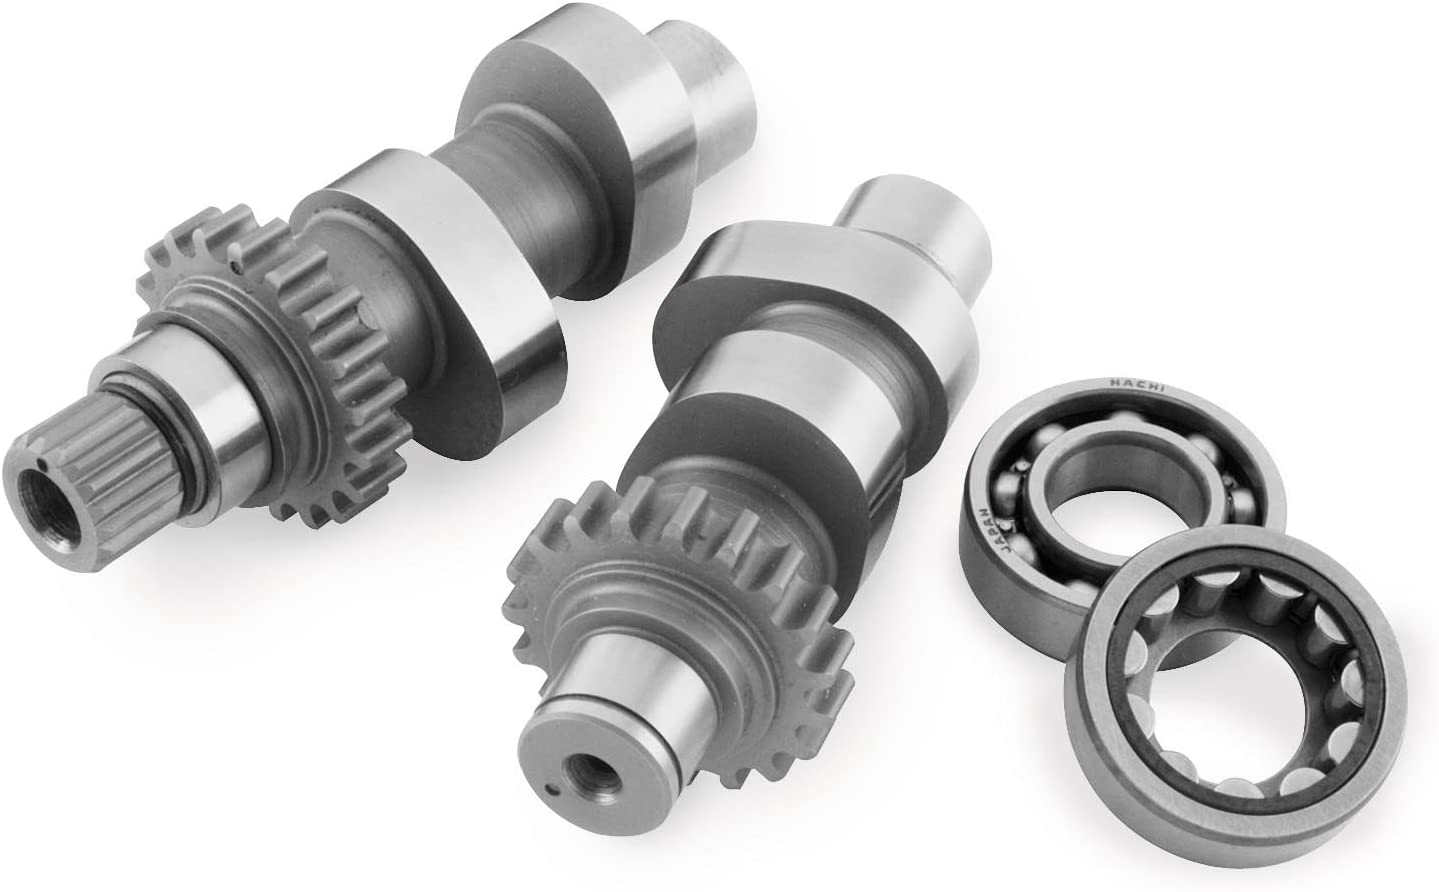 Andrews TW21 Chain Driven Cams for Harley Twin Cam 99-06